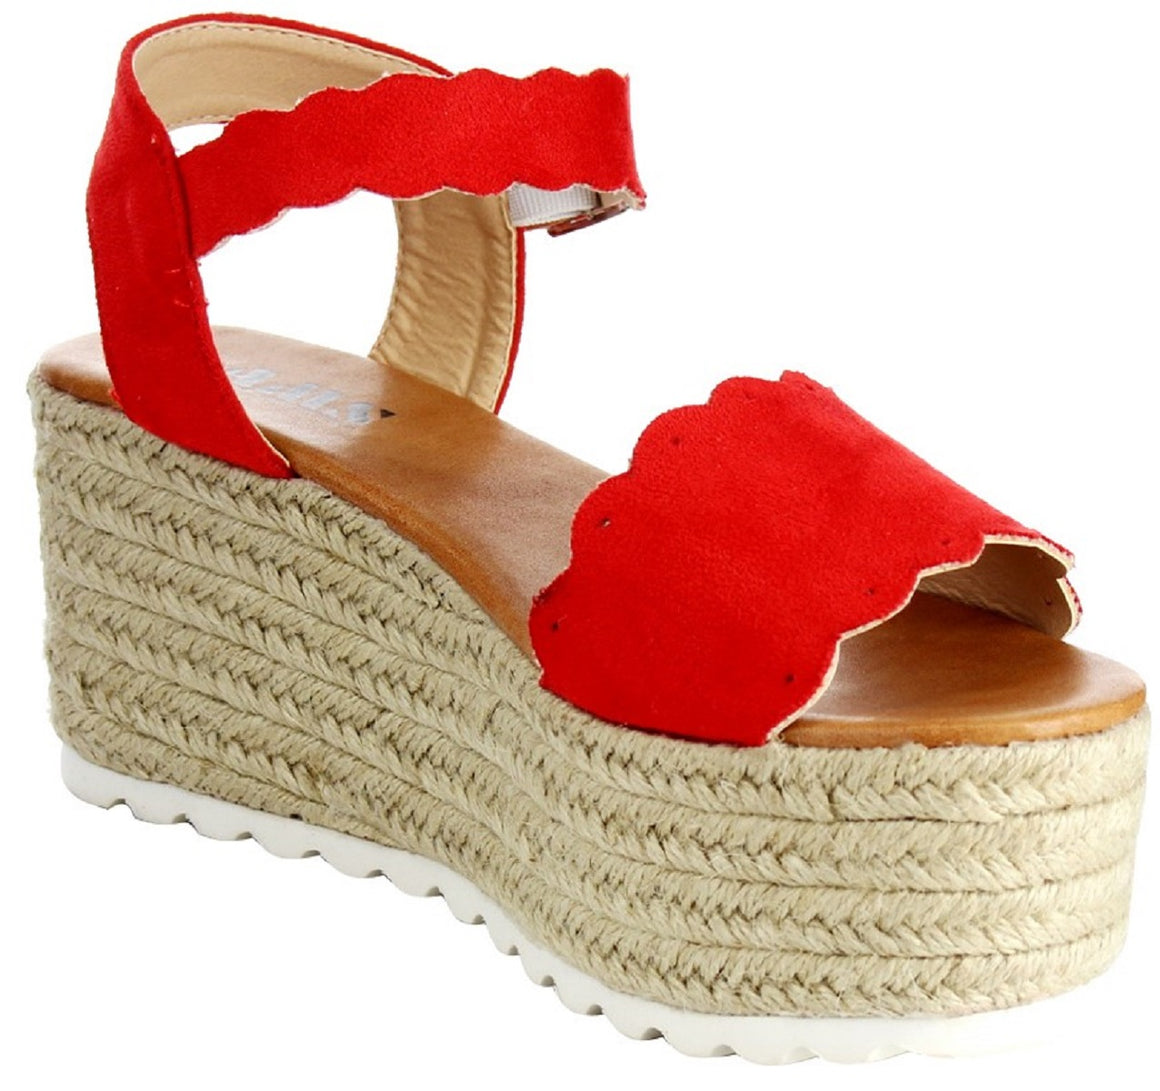 Emma-23 Mary Jane Espadrille Platform Wedge Flatform Open Toe Sandal Red